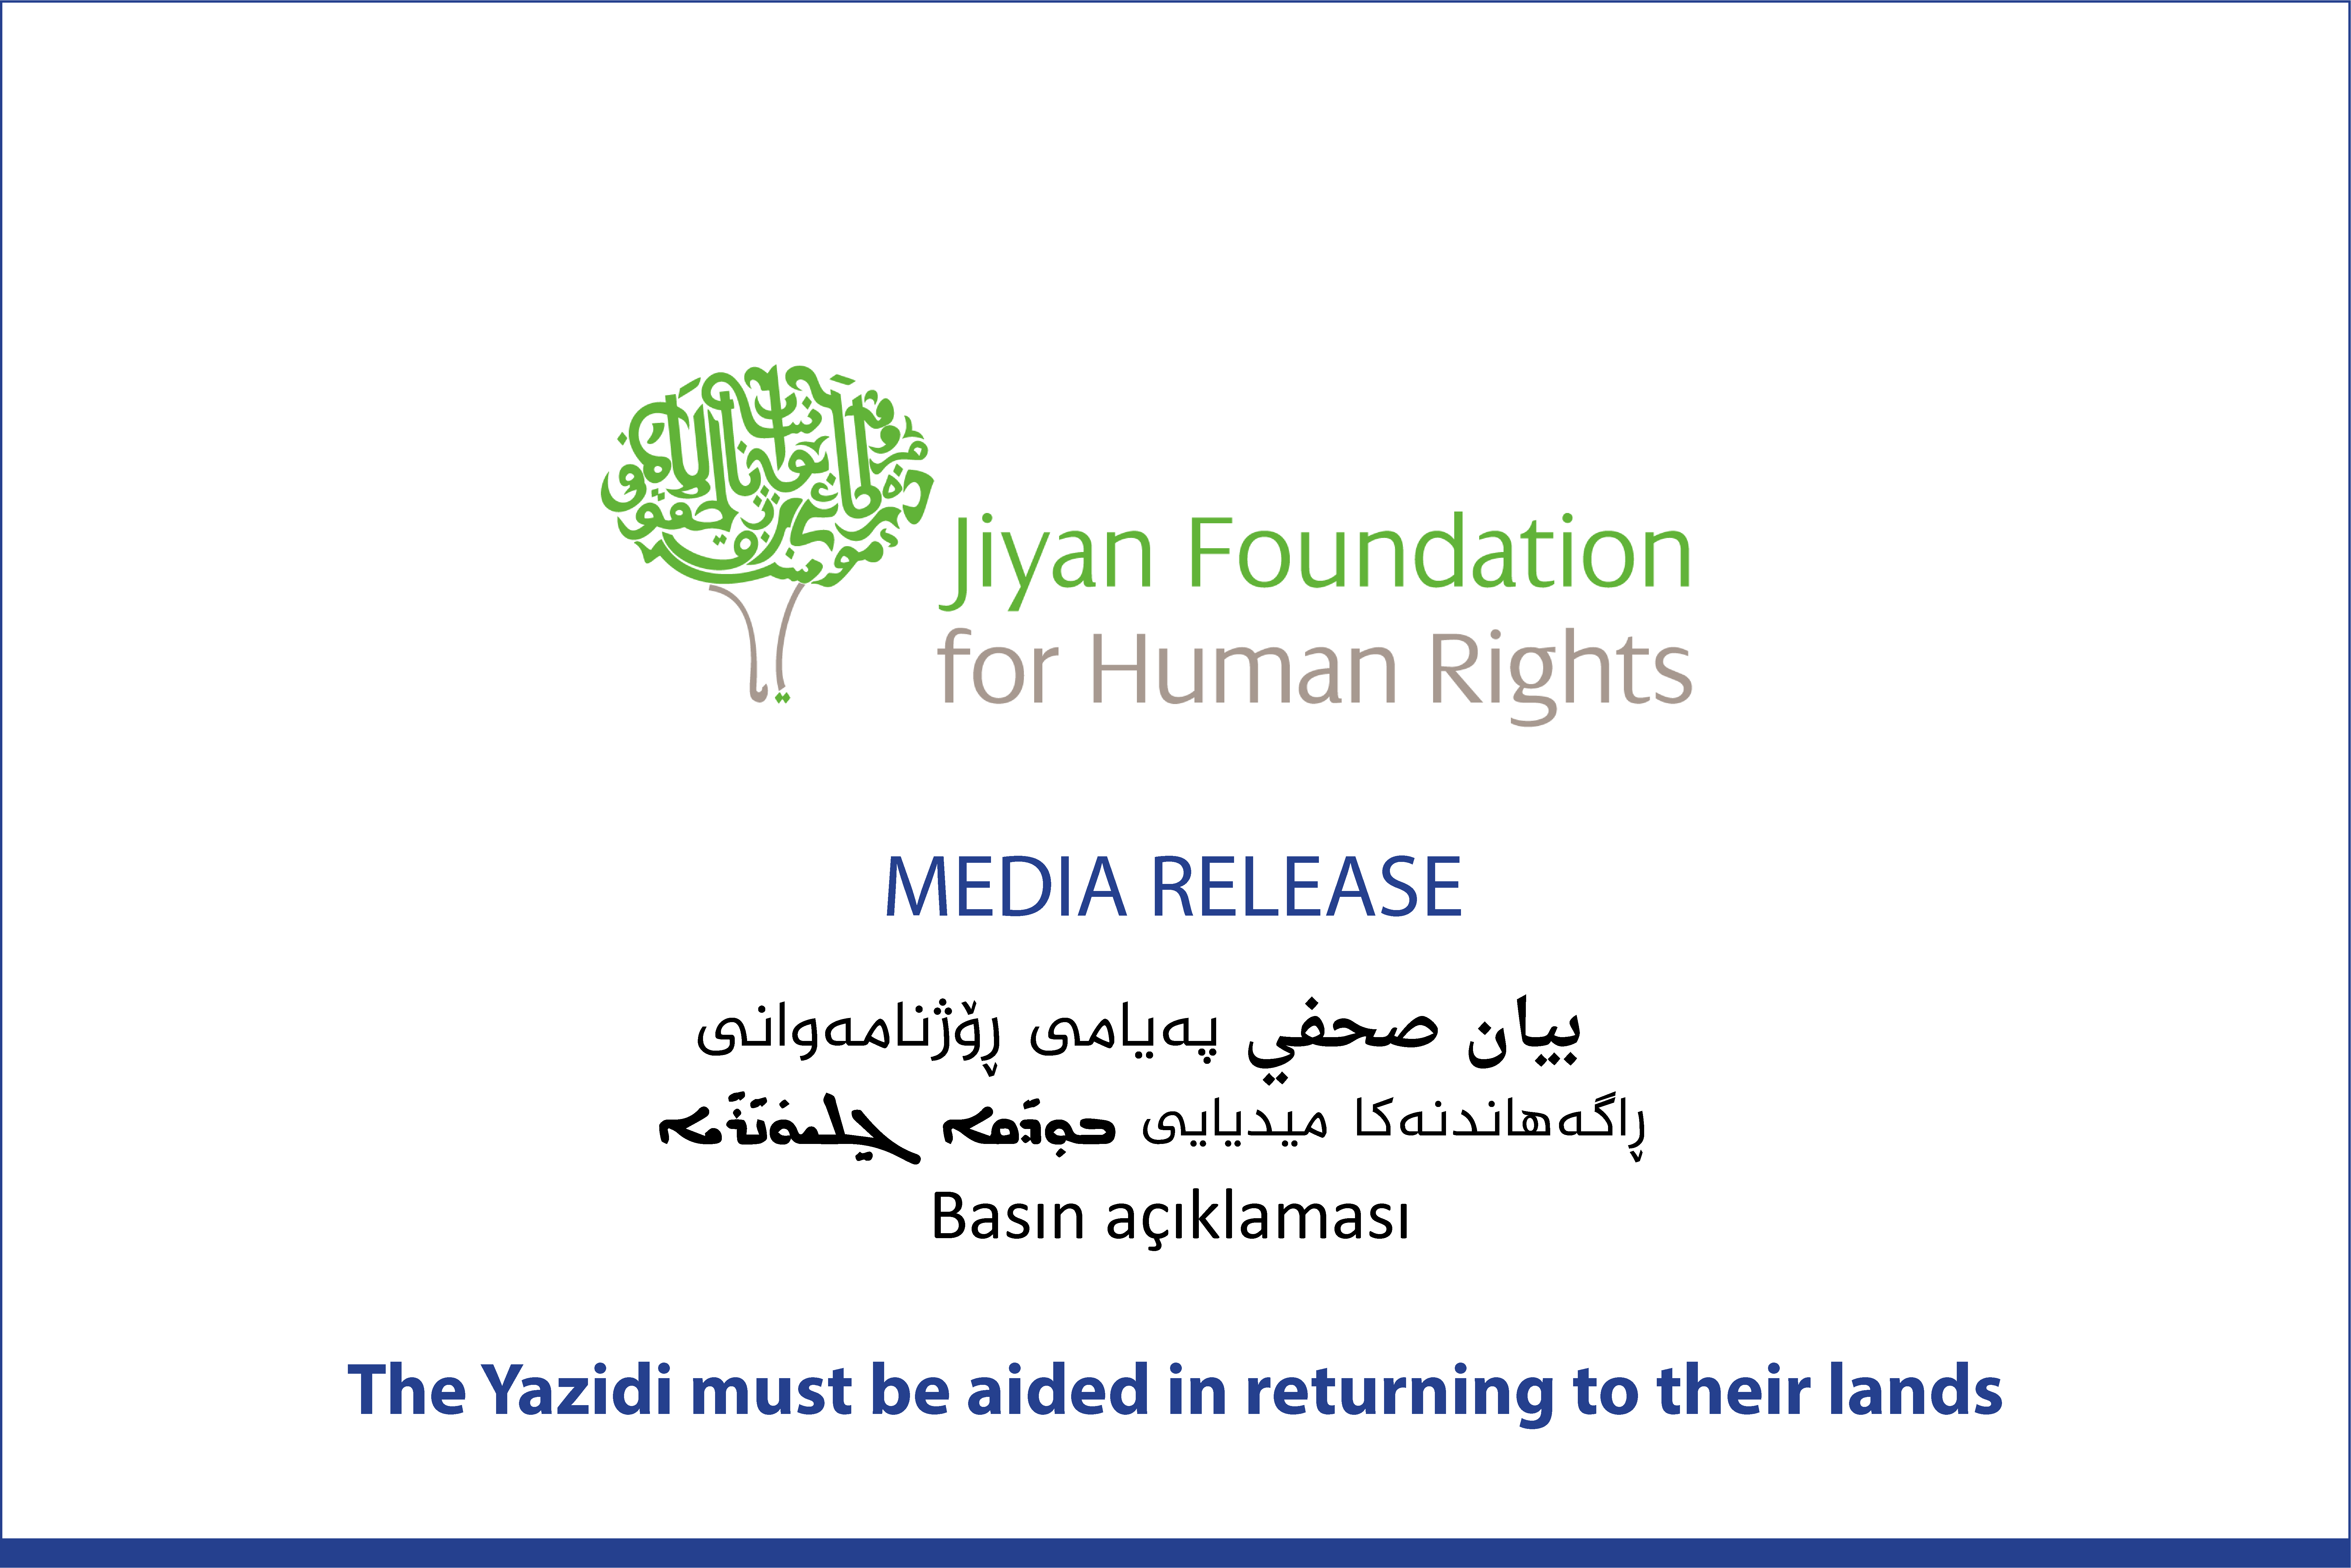 Statement of Jiyan Foundation